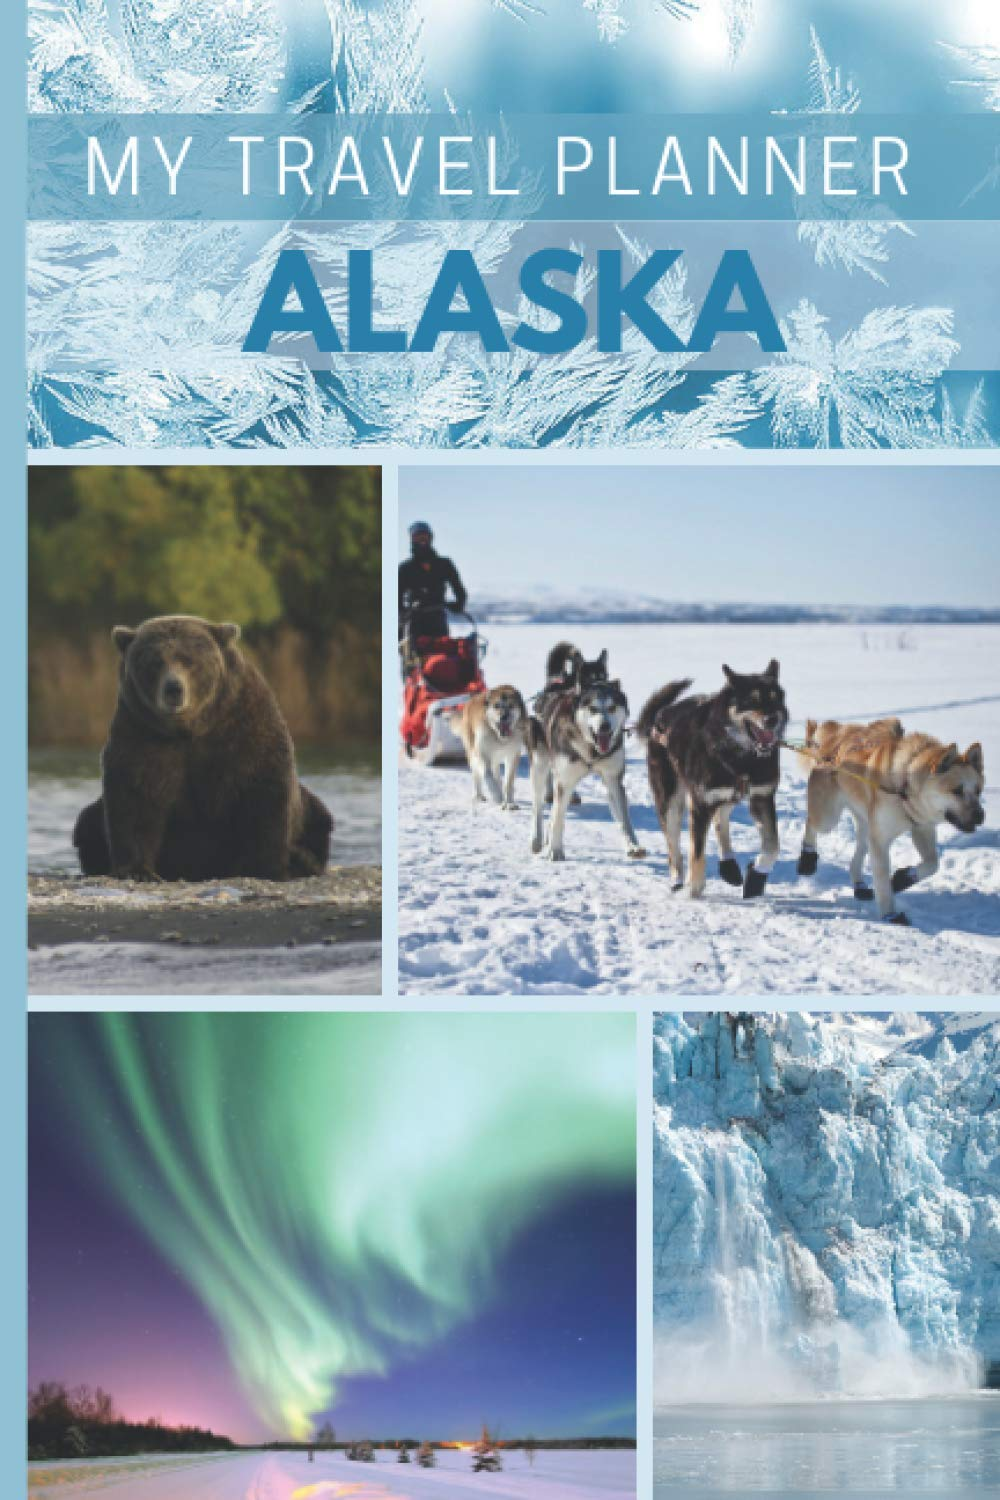 My Travel Planner Alaska Vacation Guide Journal To Plan Up To 27 Day Trip Fill In Sections Checklists Itinerary Budget Calendar Flight Info Daily Your Great Holidays Perfect Travel Gift Orex